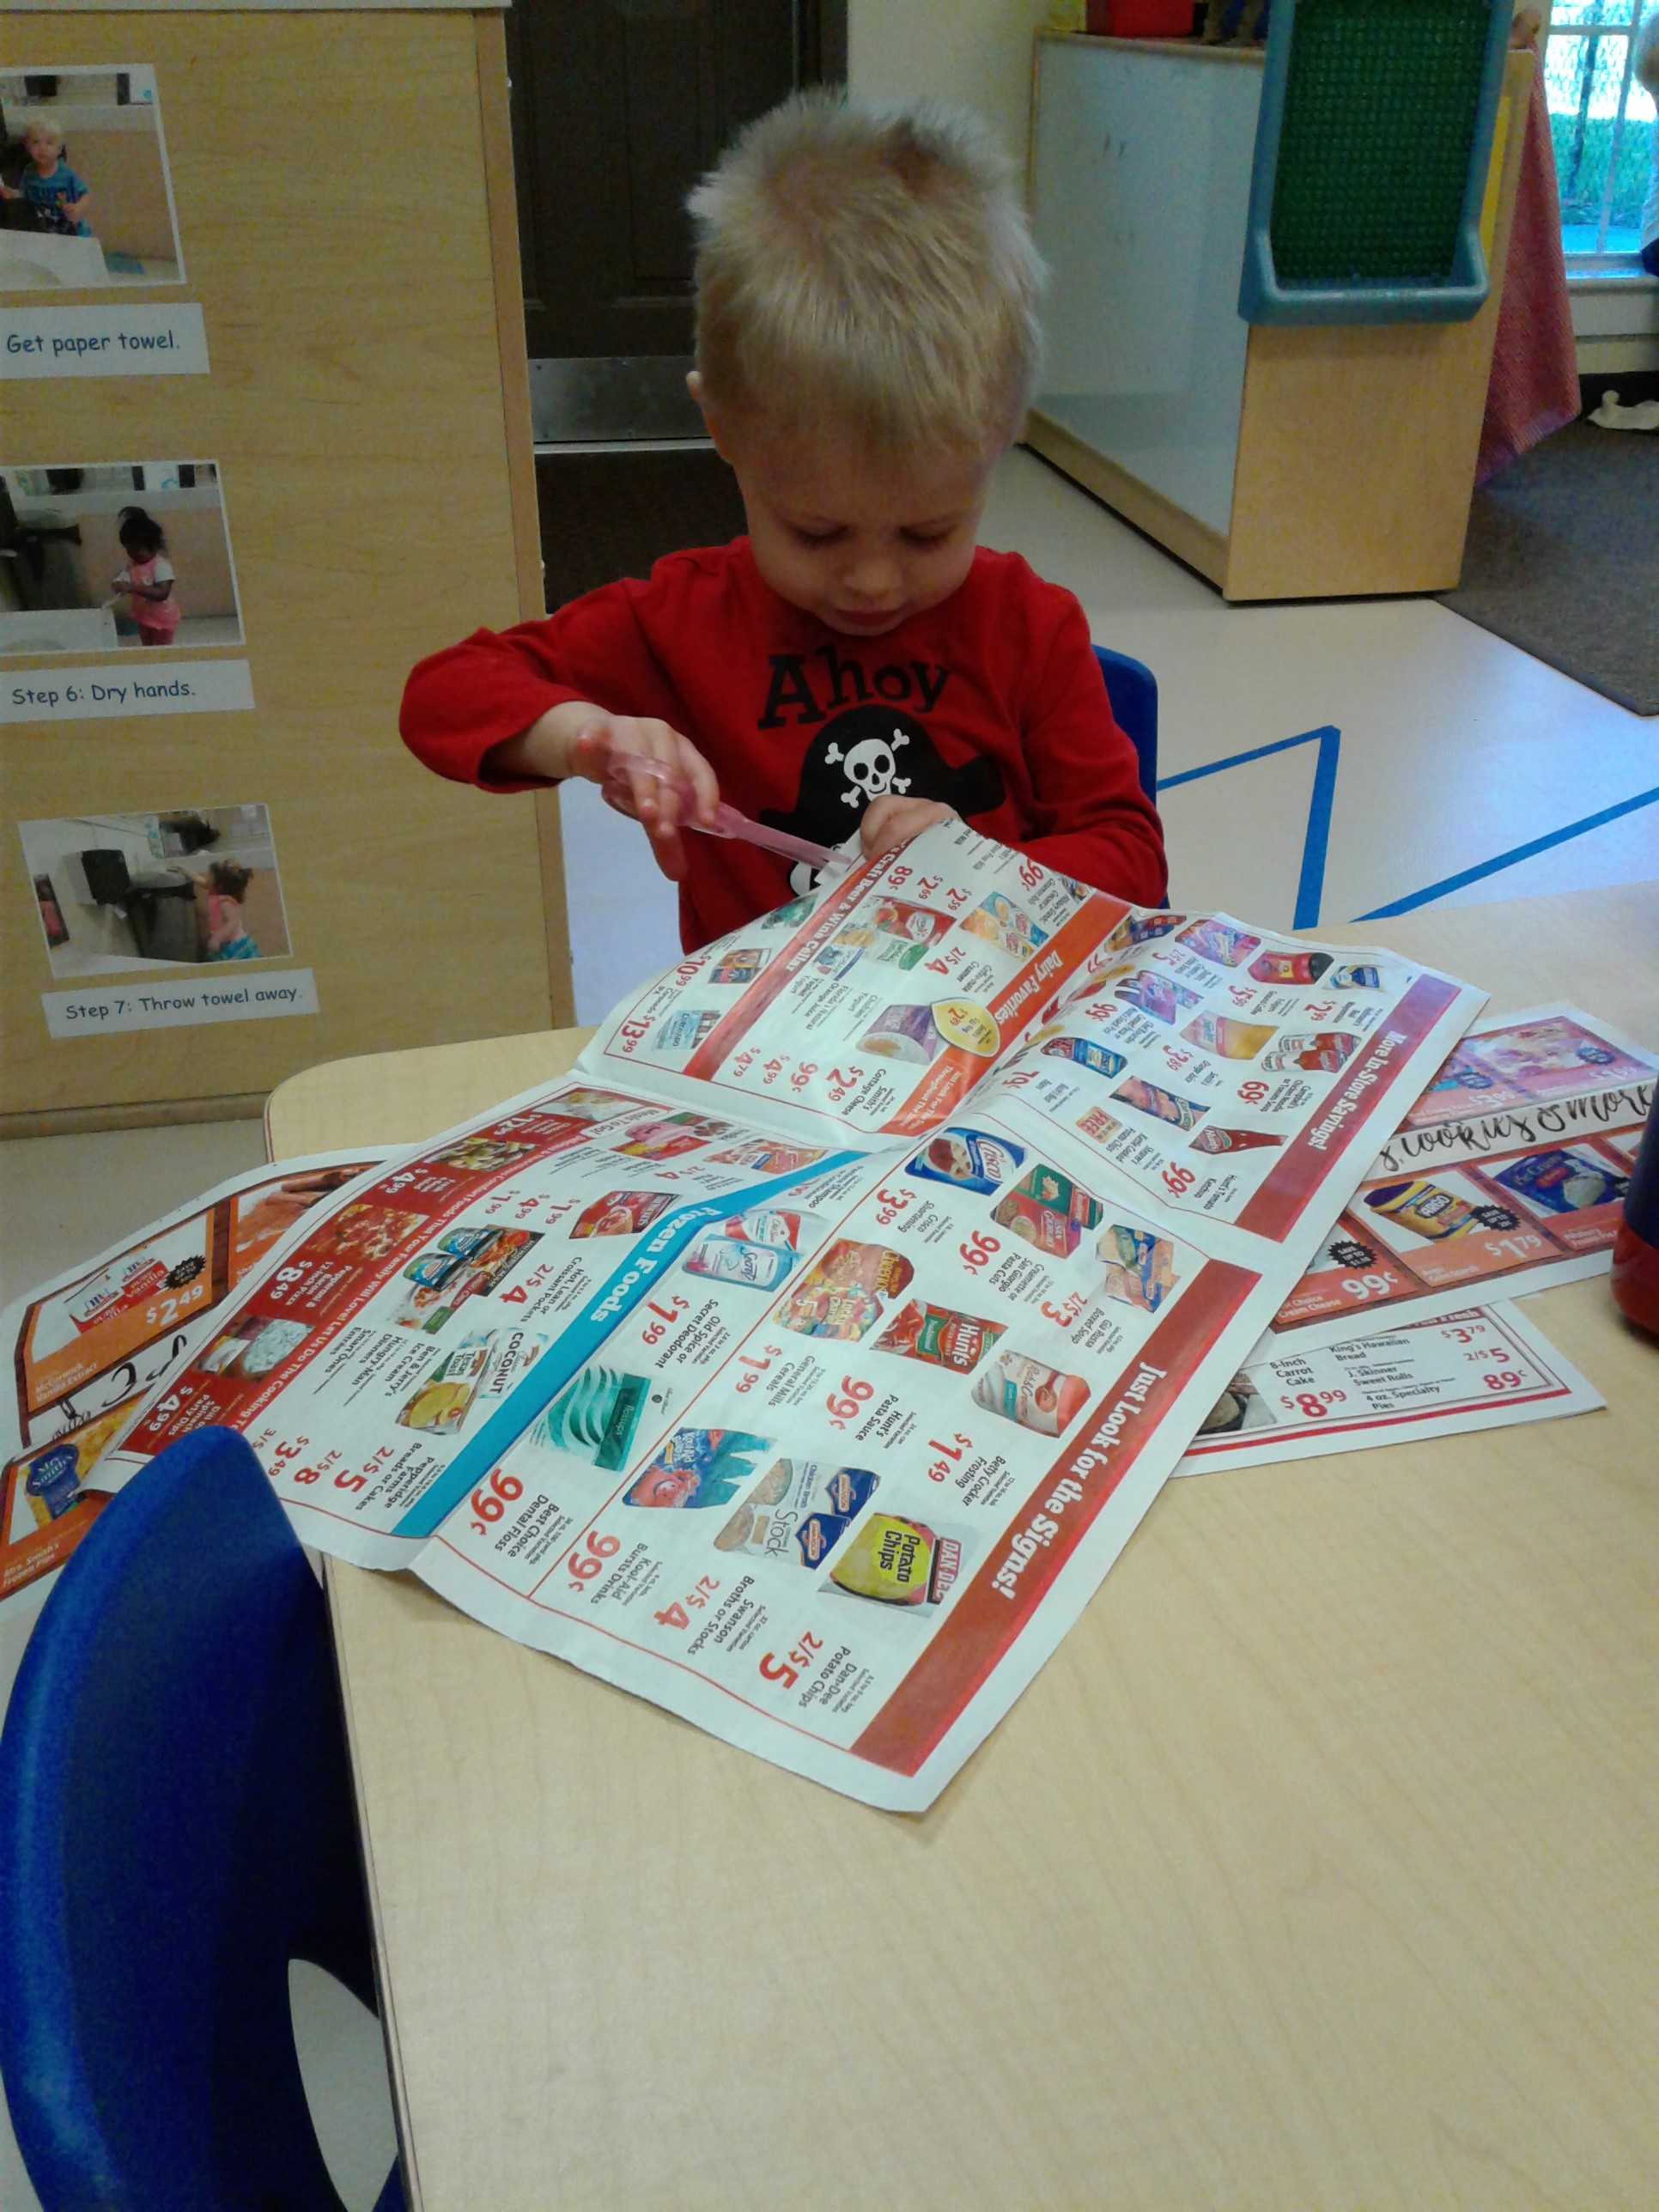 Our Toddler classroom was learning about Foods and Flavors. This child was practicing his fine-motor skills by cutting out food ads from a magazine. We always like to have materials in the classroom that the children would see in their real environment.